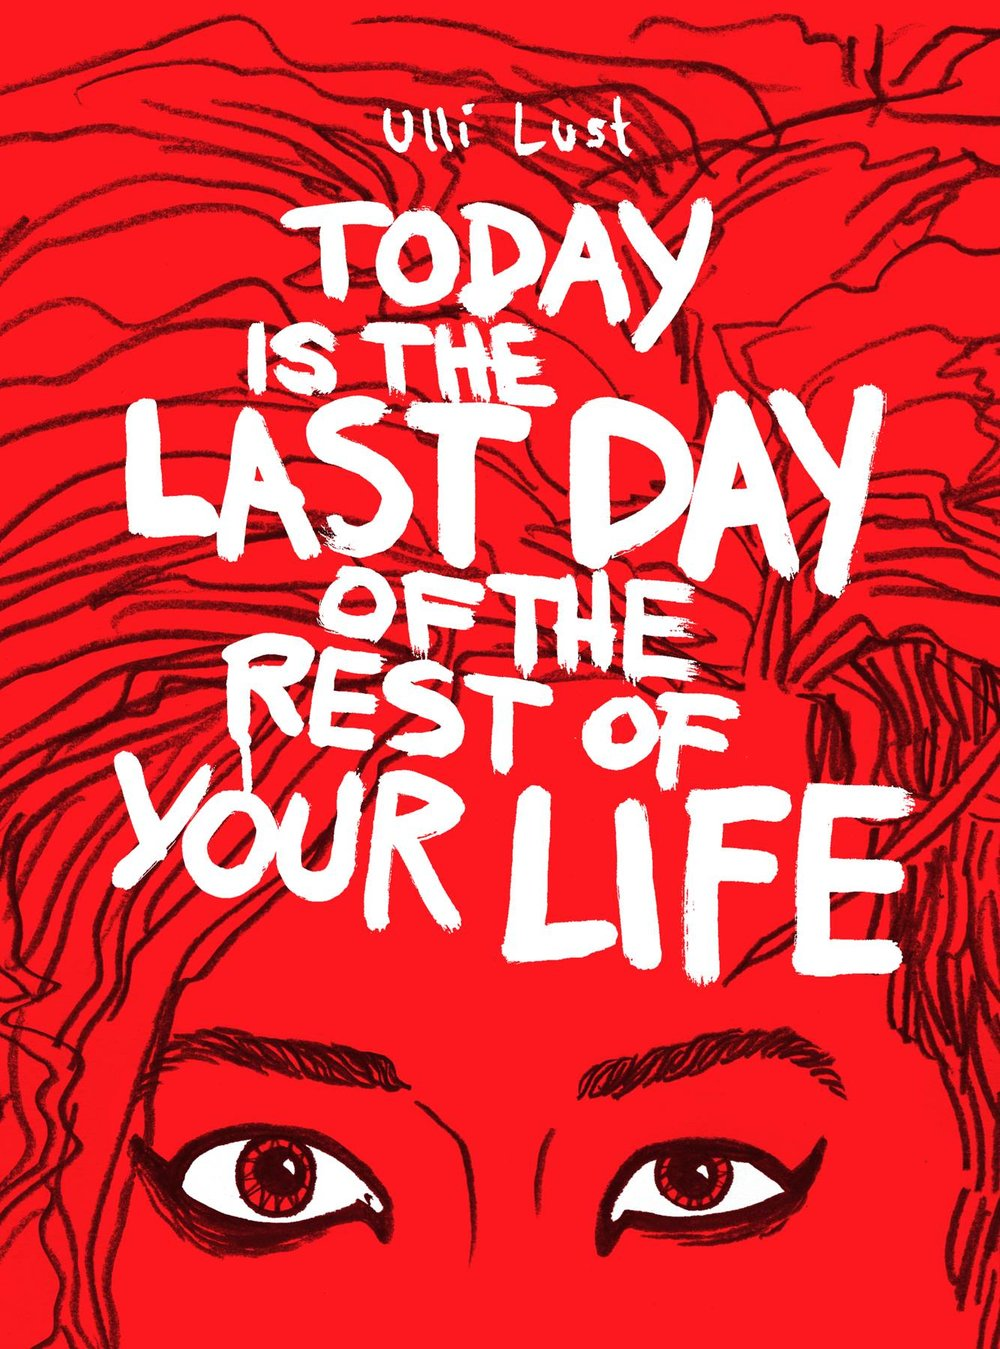 Today is the Last Day of the Rest of Your Life GN - Lauren's PickMeasuring up to its lengthy title, Today is the Last Day of the Rest of Your Life sprawls over more than 400 pages of autobiographical fun! Follow the young author and her best friend on an epic journey through the Italy of the early 1980s in this travelogue meets coming-of-age story. Ulli Lust (Voices in the Dark GN) is a master cartoonist and storyteller, capturing the famous sights and settings with both clarity and style. Equal parts funny and heartwrenching, this book is my favorite graphic novel of all time. OF ALL TIME.